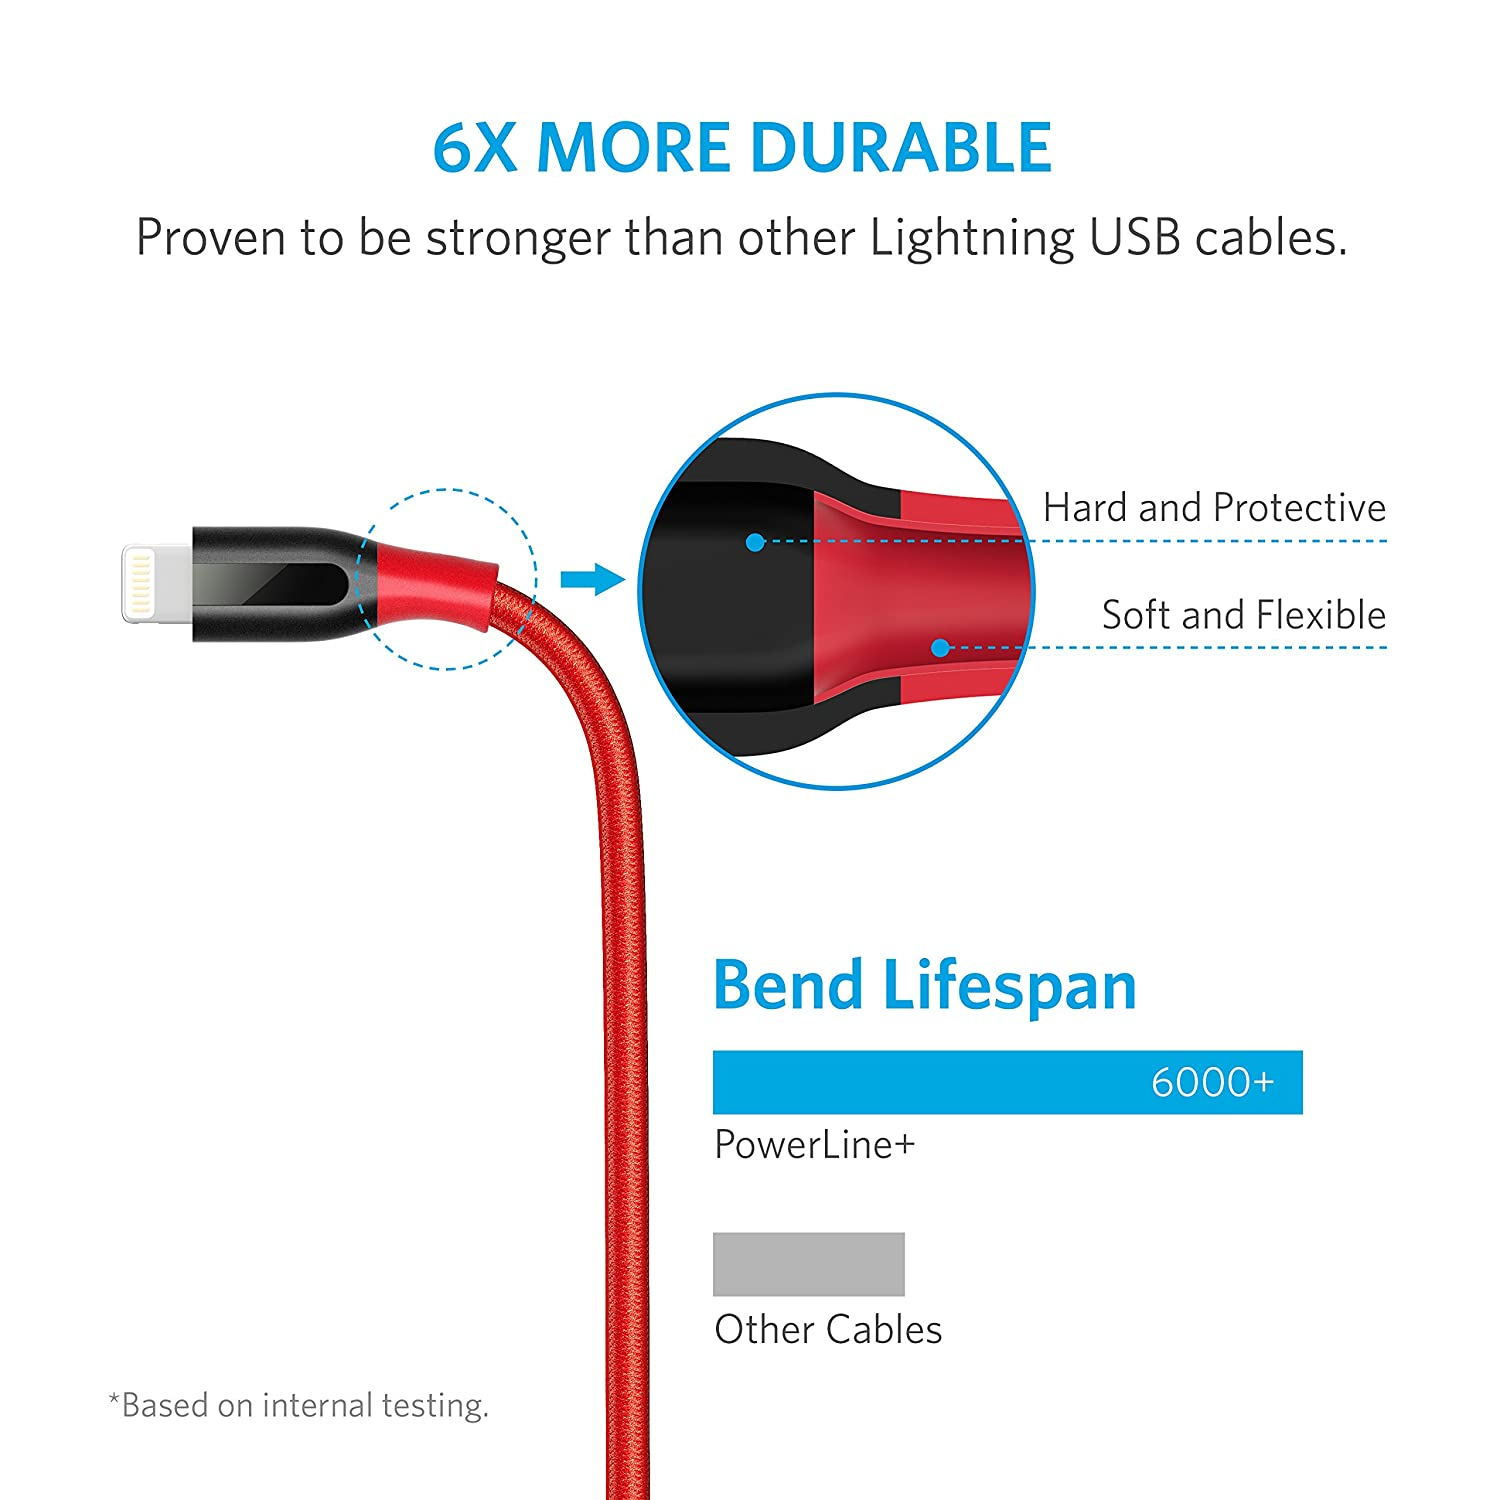 Pictorial Diagram Of Usb Cable Wires Color Code Red Black White Anker Powerline Lightning 3ft With Pouch Nylon Braided Charging For Iphone Ipad And More Cell Phones Accessories